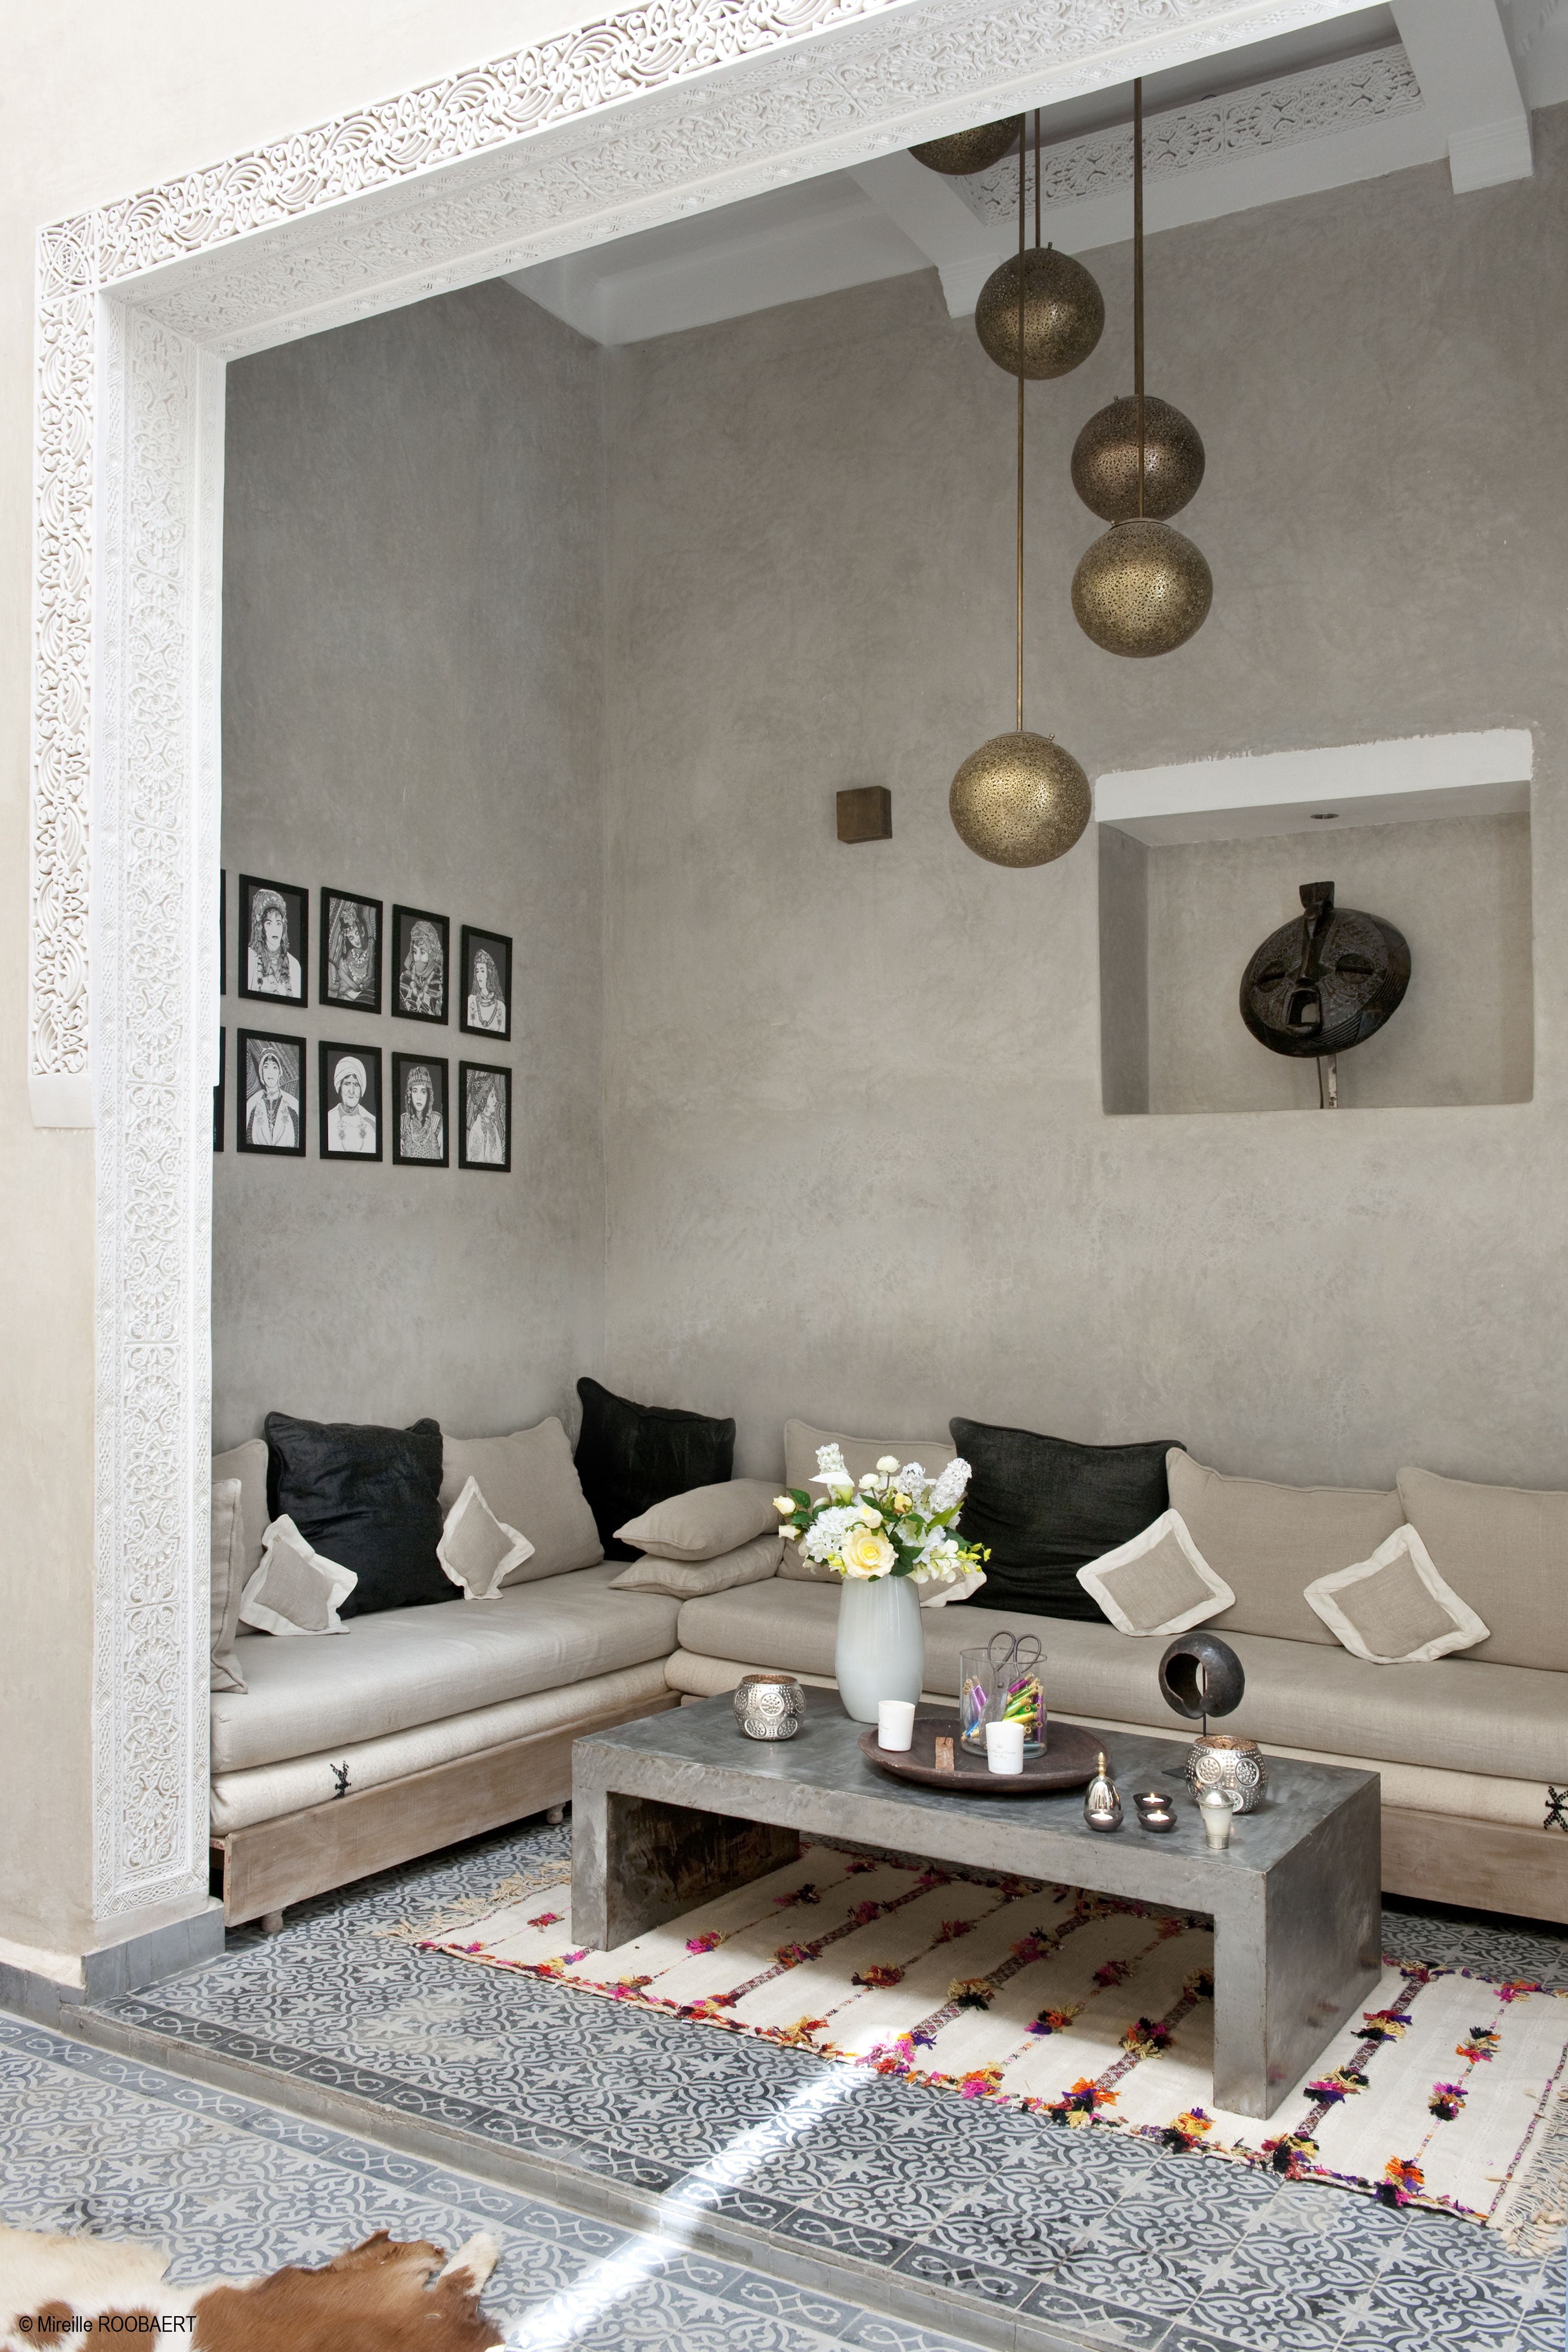 Modern moroccan home decor - Find This Pin And More On Moroccan Touch